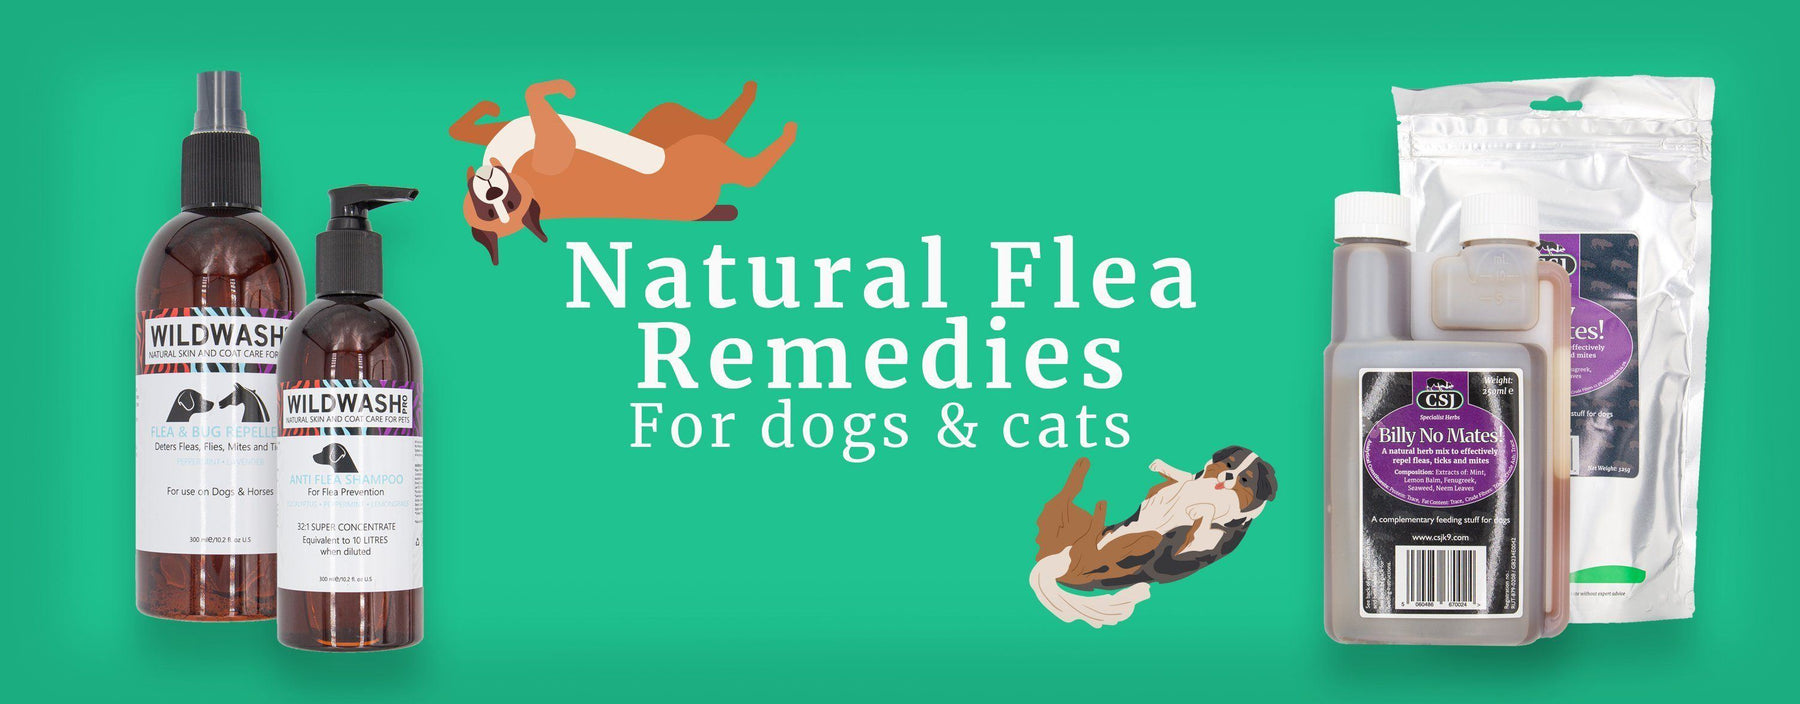 Natural Flea Remedies for dogs and cats